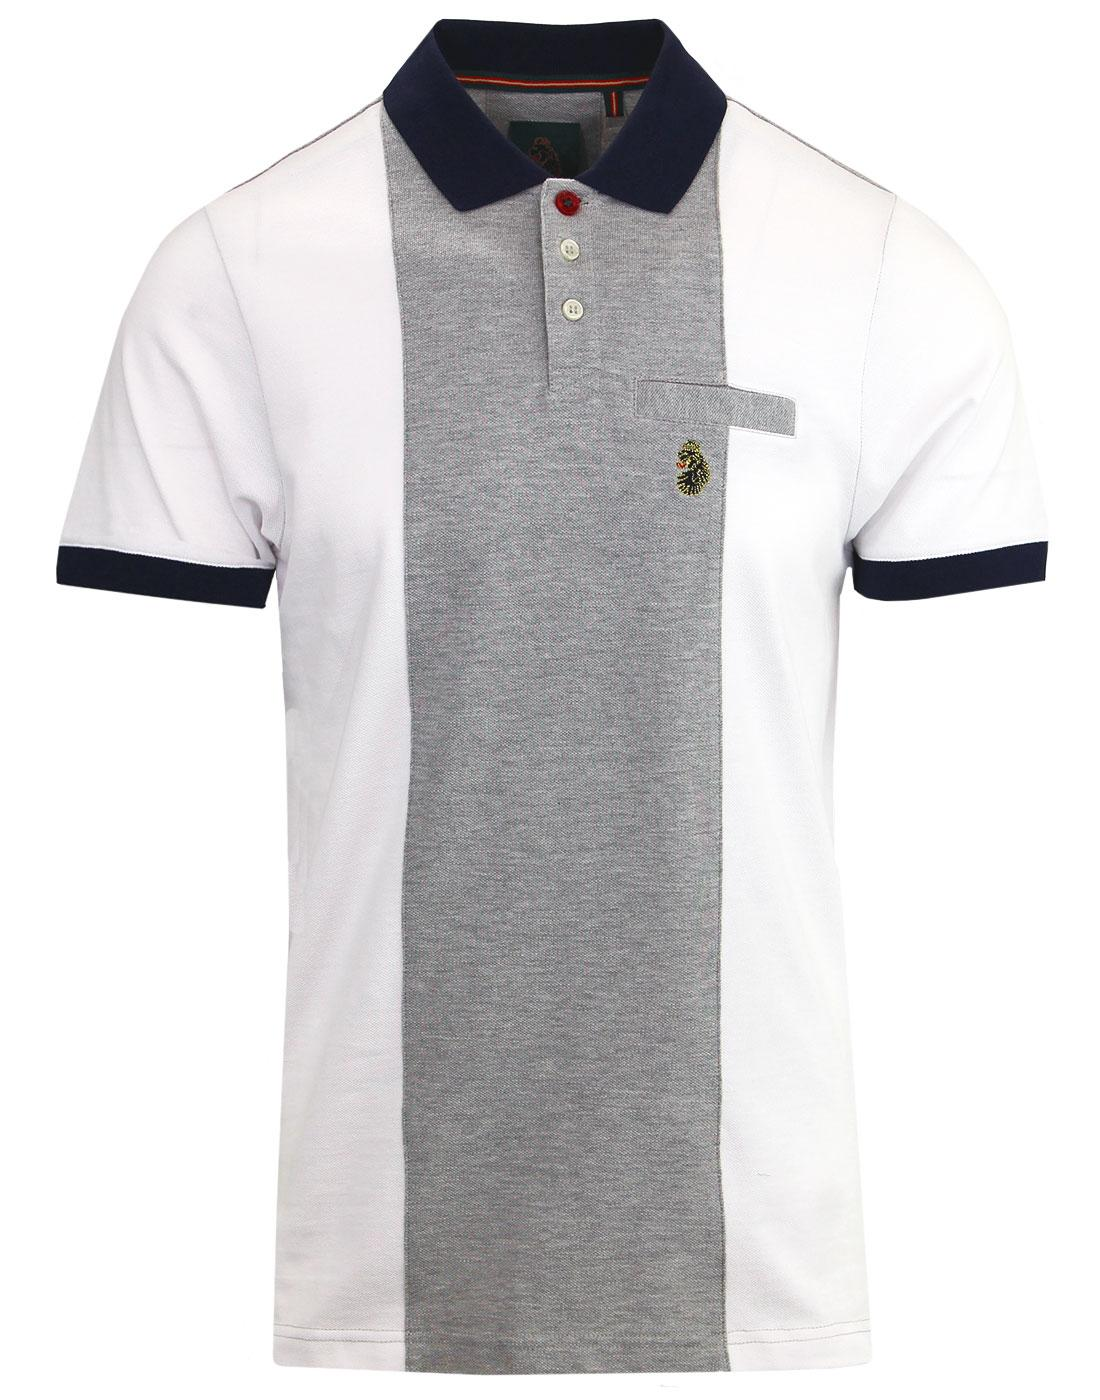 Warner LUKE Retro Mod Pique Panel Polo Shirt WHITE